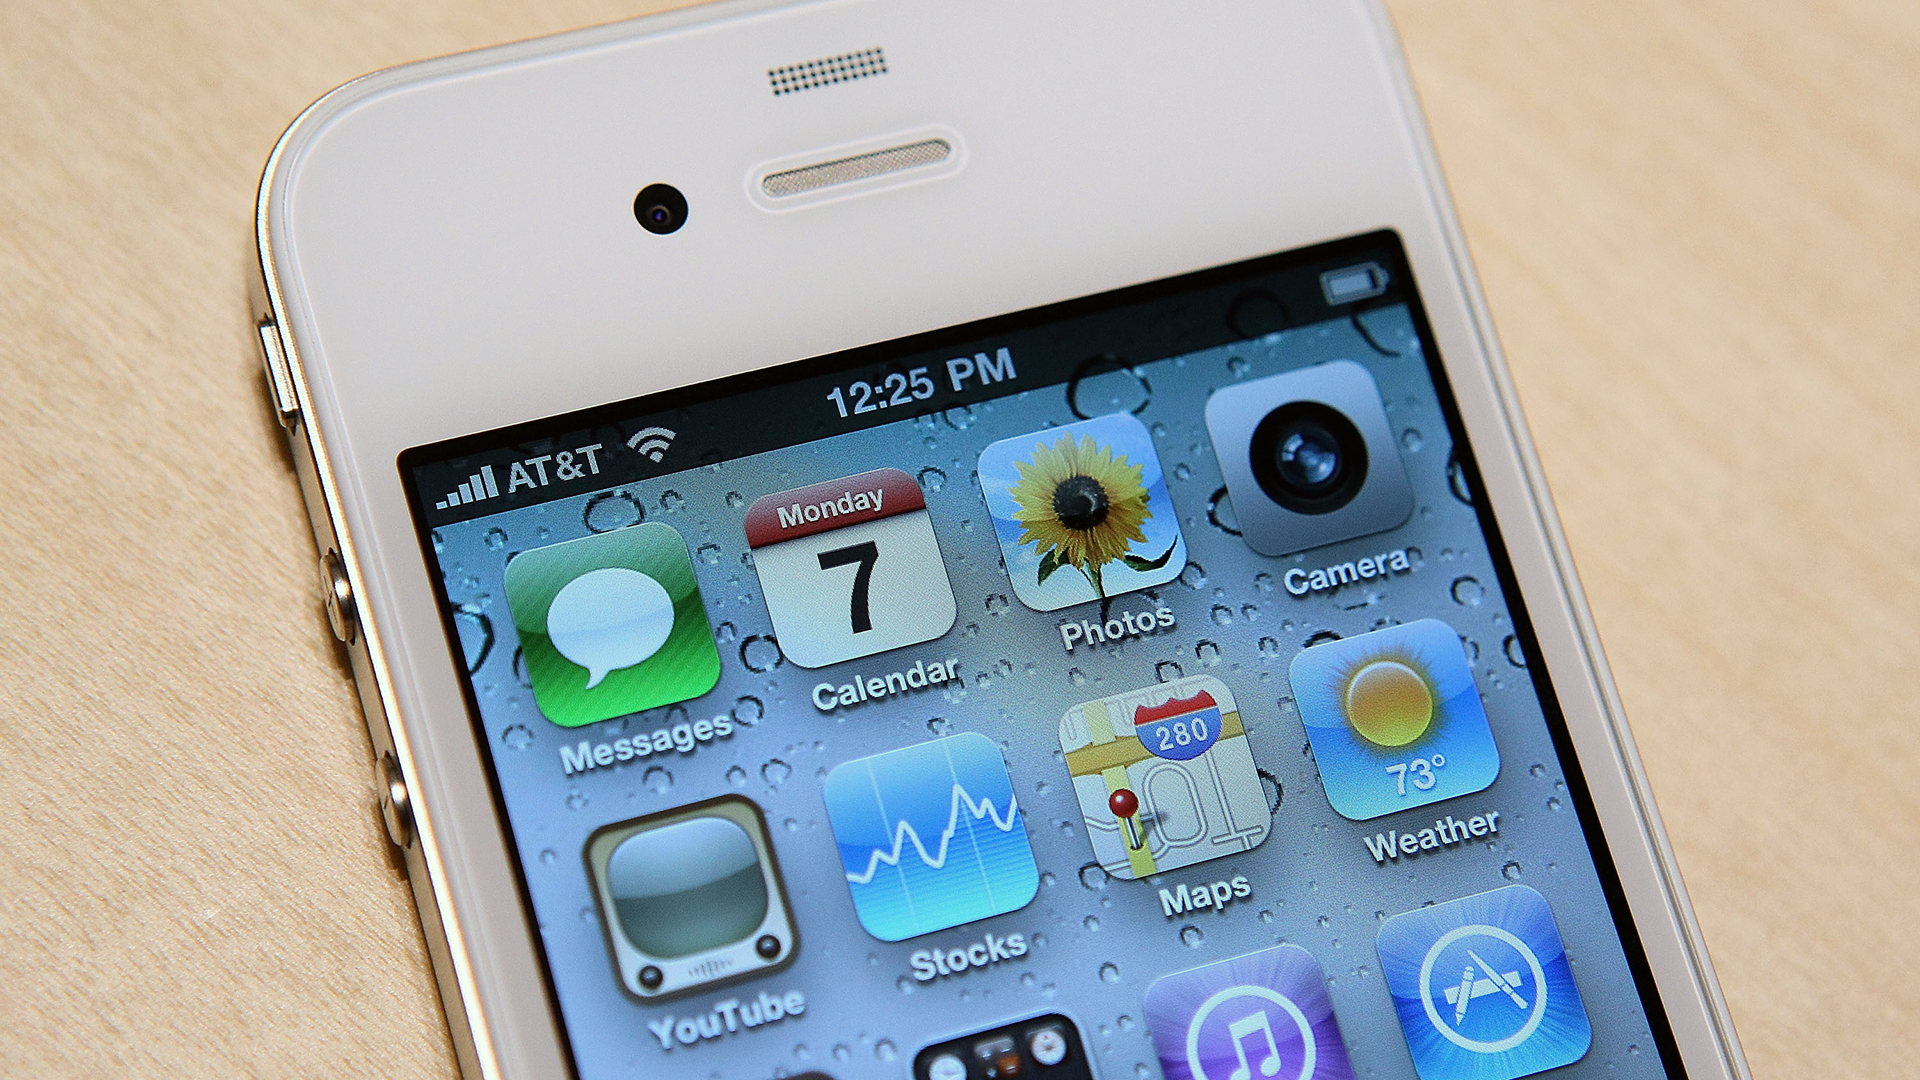 iPhone 4 from 2010-159532.jpg35774494